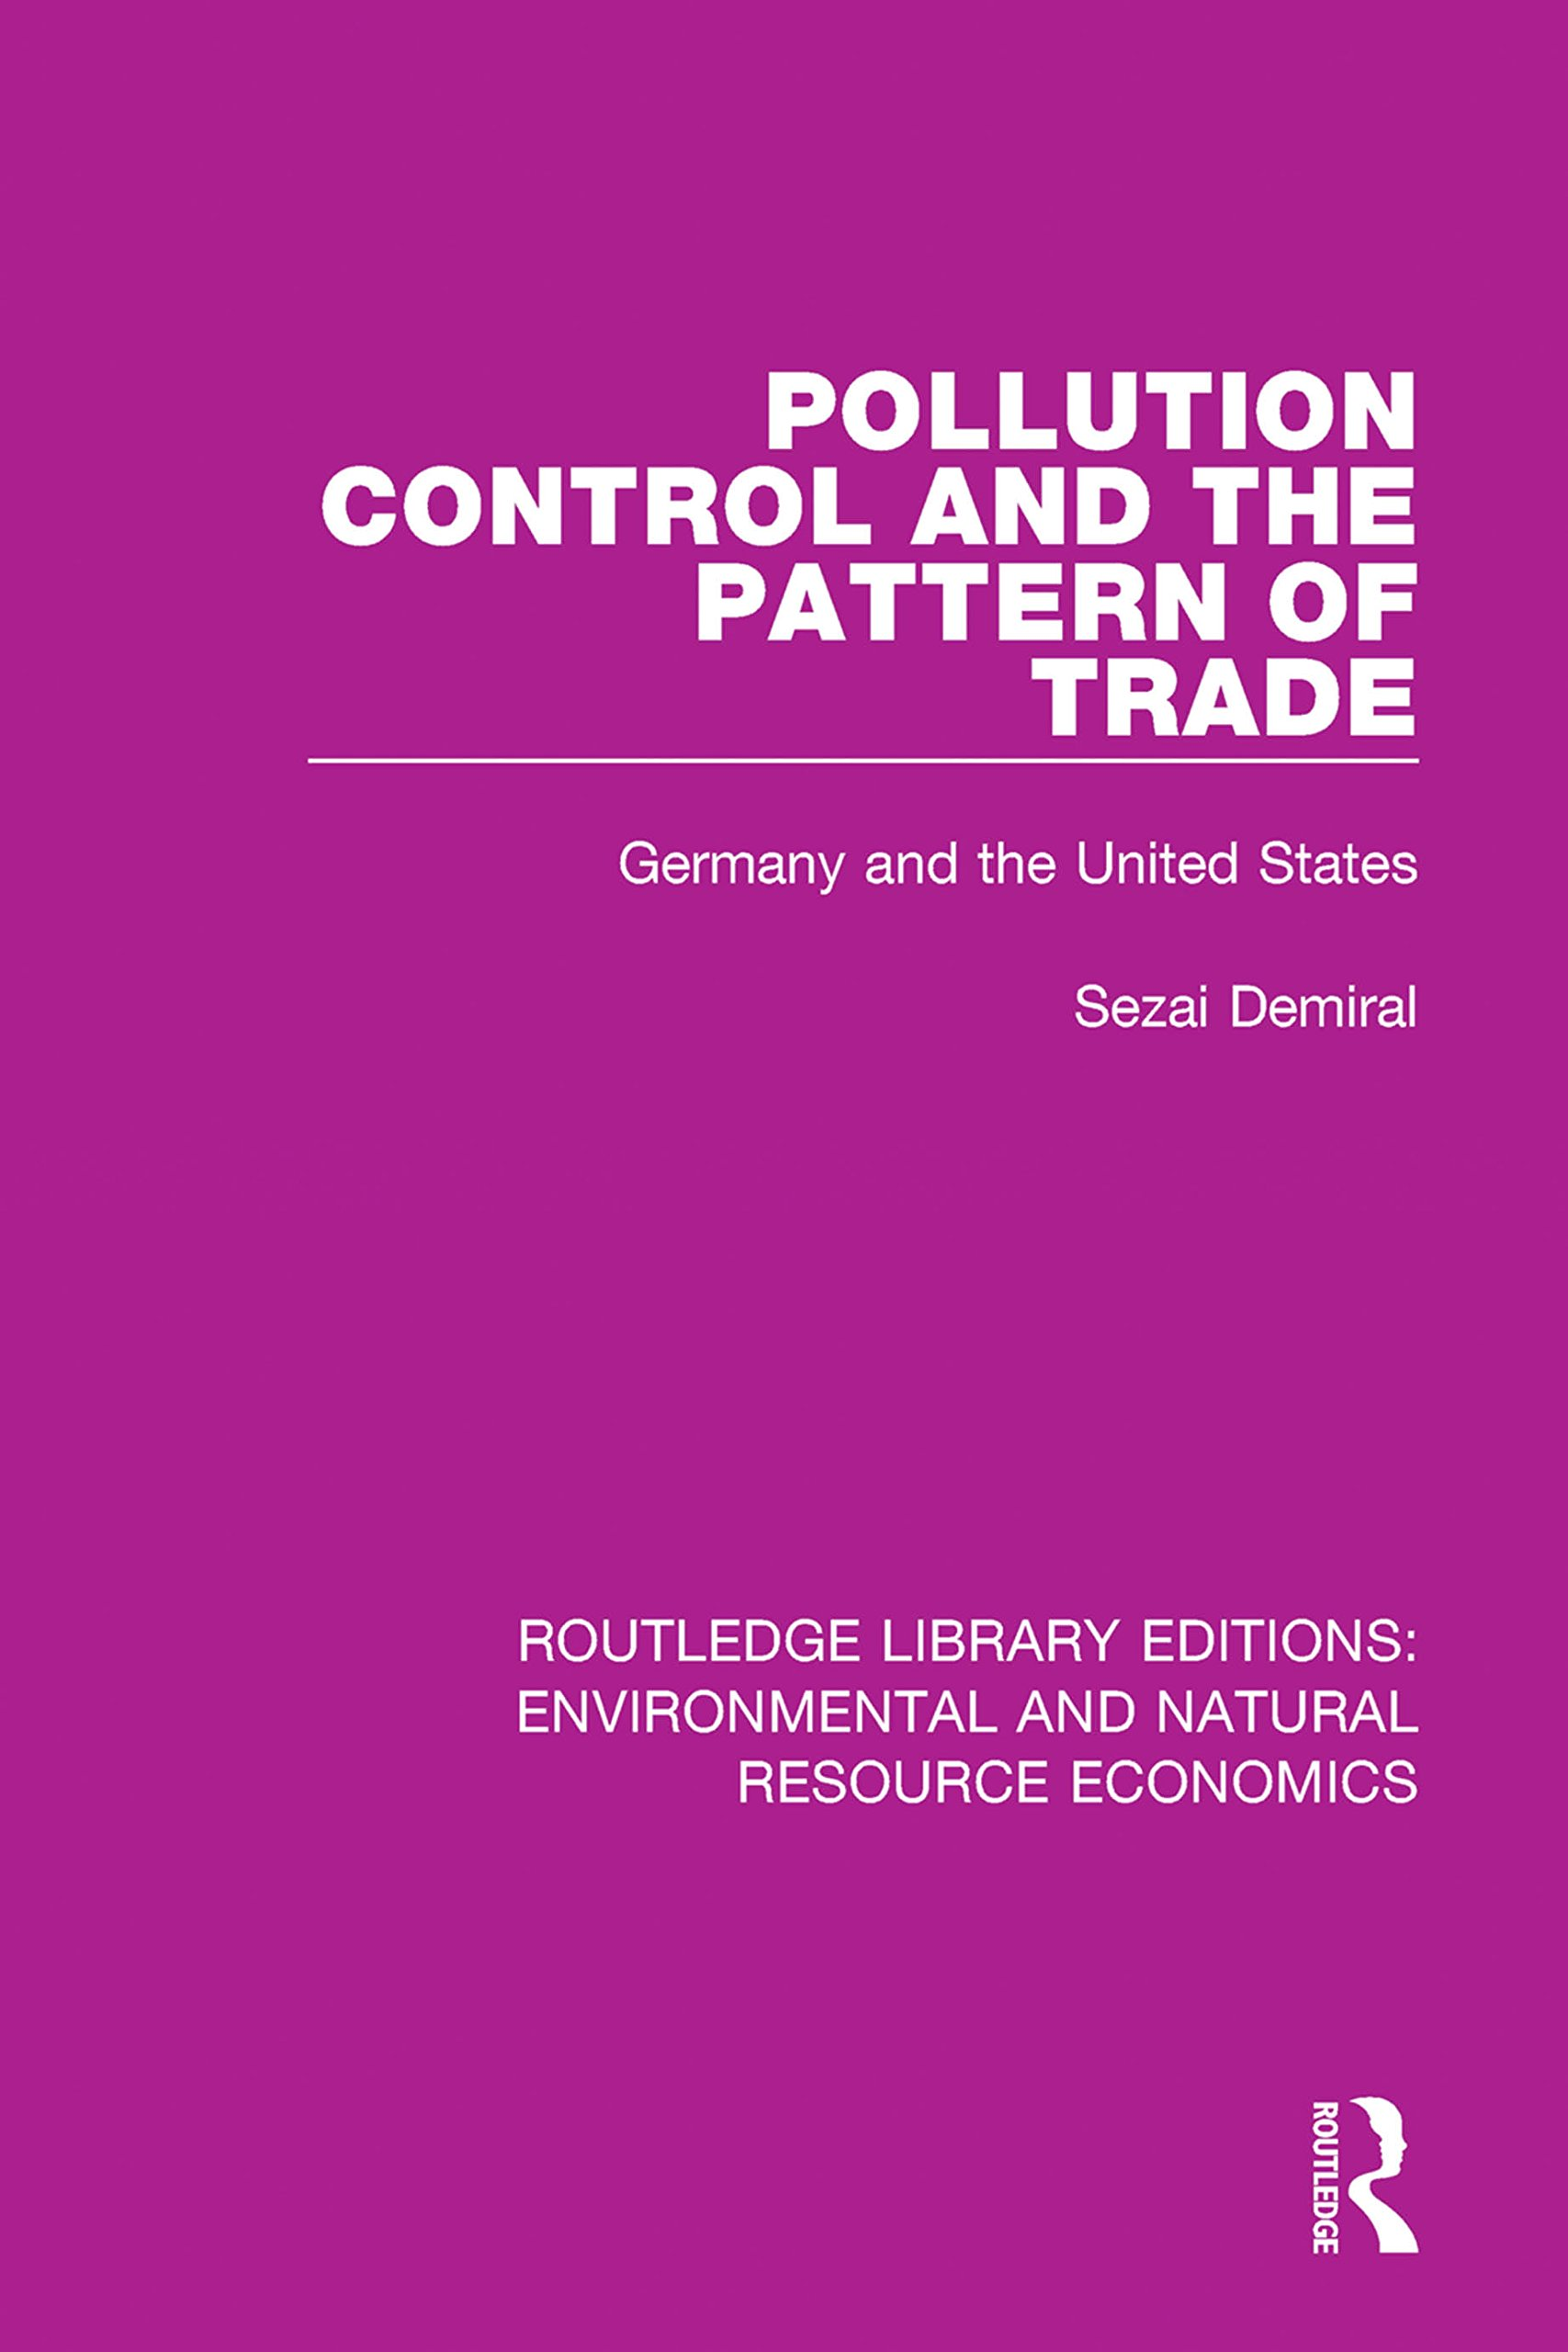 Pollution Control and the Pattern of Trade: Germany and the United States (Routledge Library Editions: Environmental and Natural Resource Economics)